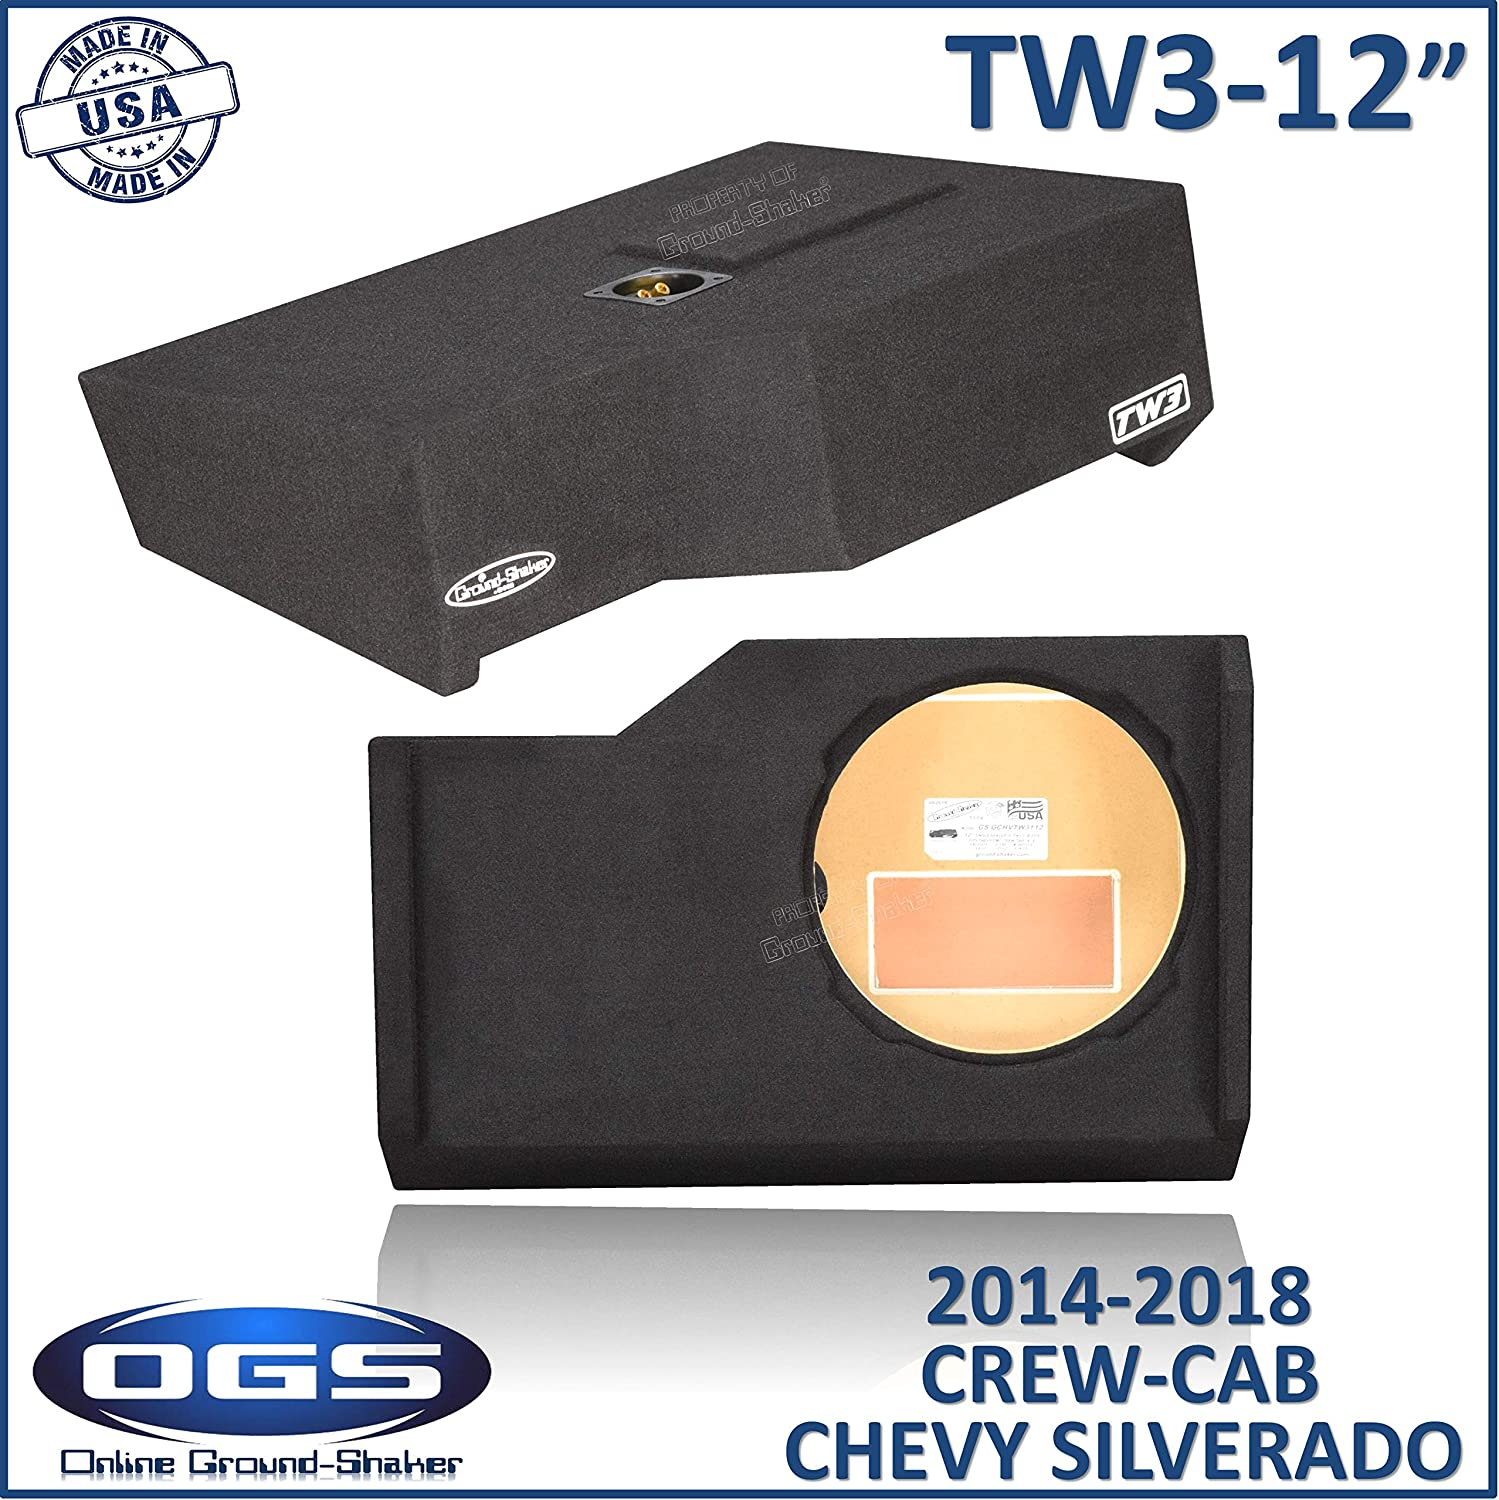 Fits Chevy Silverado /& Gmc Sierra Crew-Cab 2014-2018 12 Single Sealed Box for JL Audio TW3 12